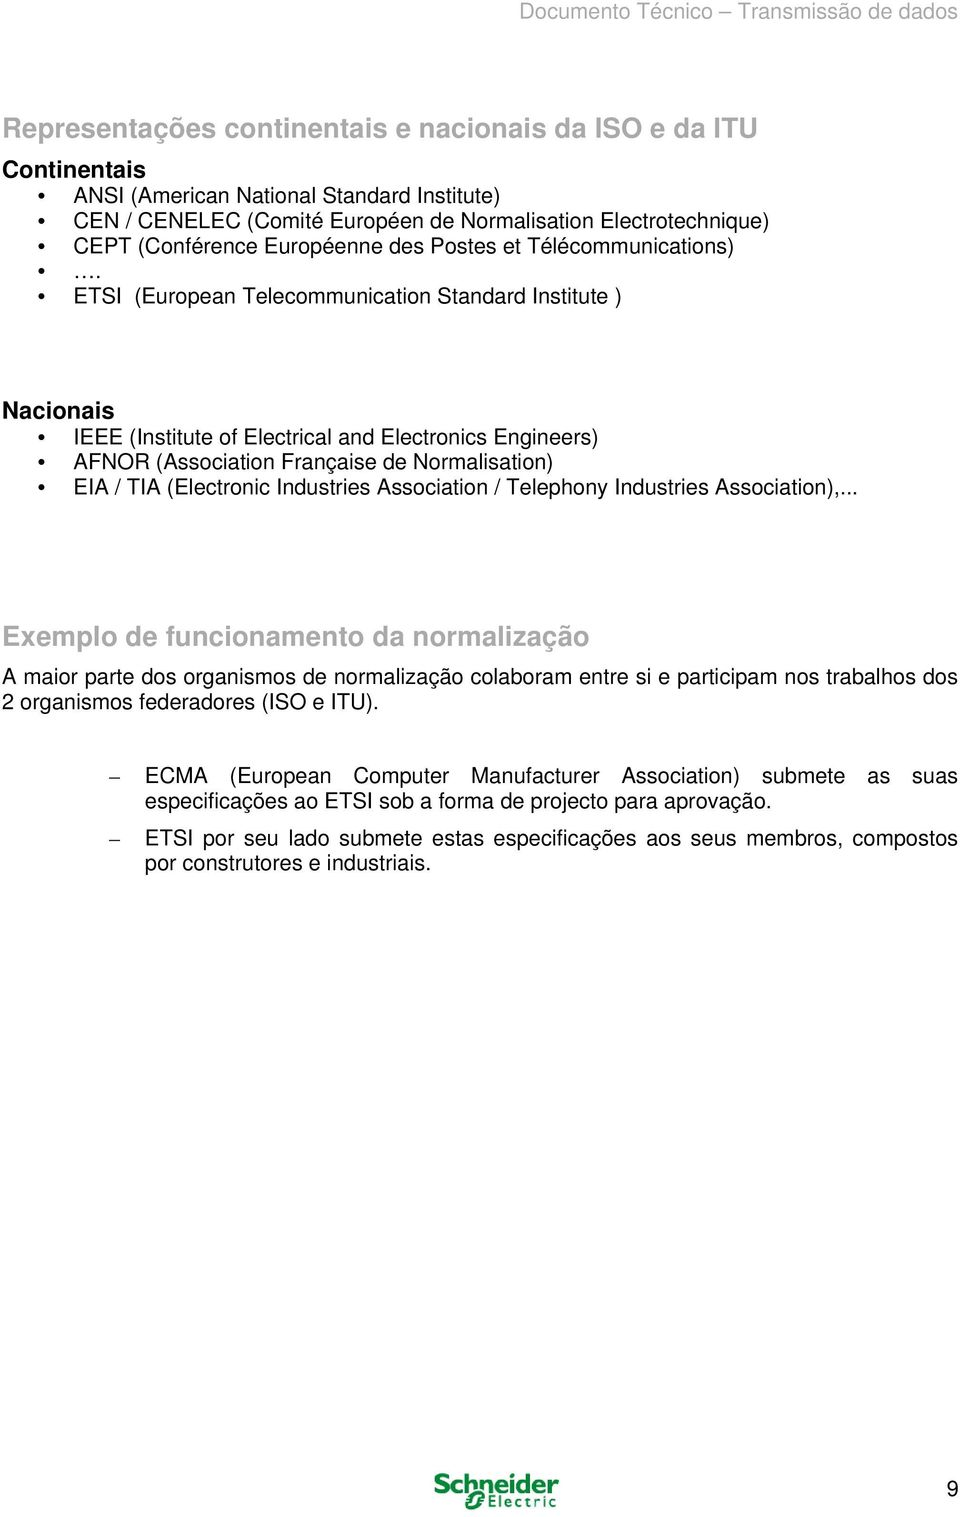 ETSI (European Telecommunication Standard Institute ) Nacionais IEEE (Institute of Electrical and Electronics Engineers) AFNOR (Association Française de Normalisation) EIA / TIA (Electronic